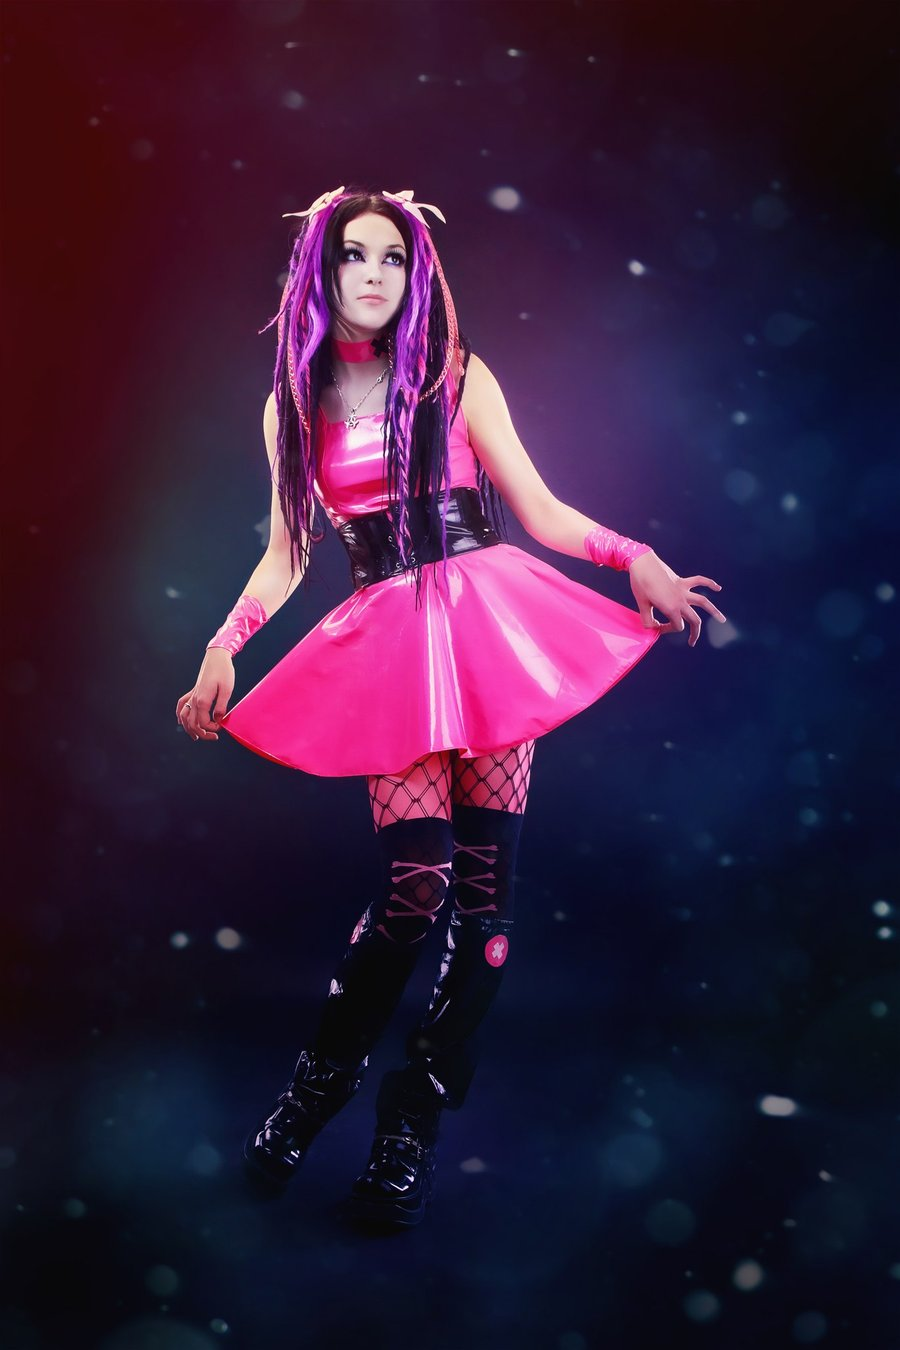 Red Dress Girl Wallpaper Many Styles Images Cybergoth Hd Wallpaper And Background